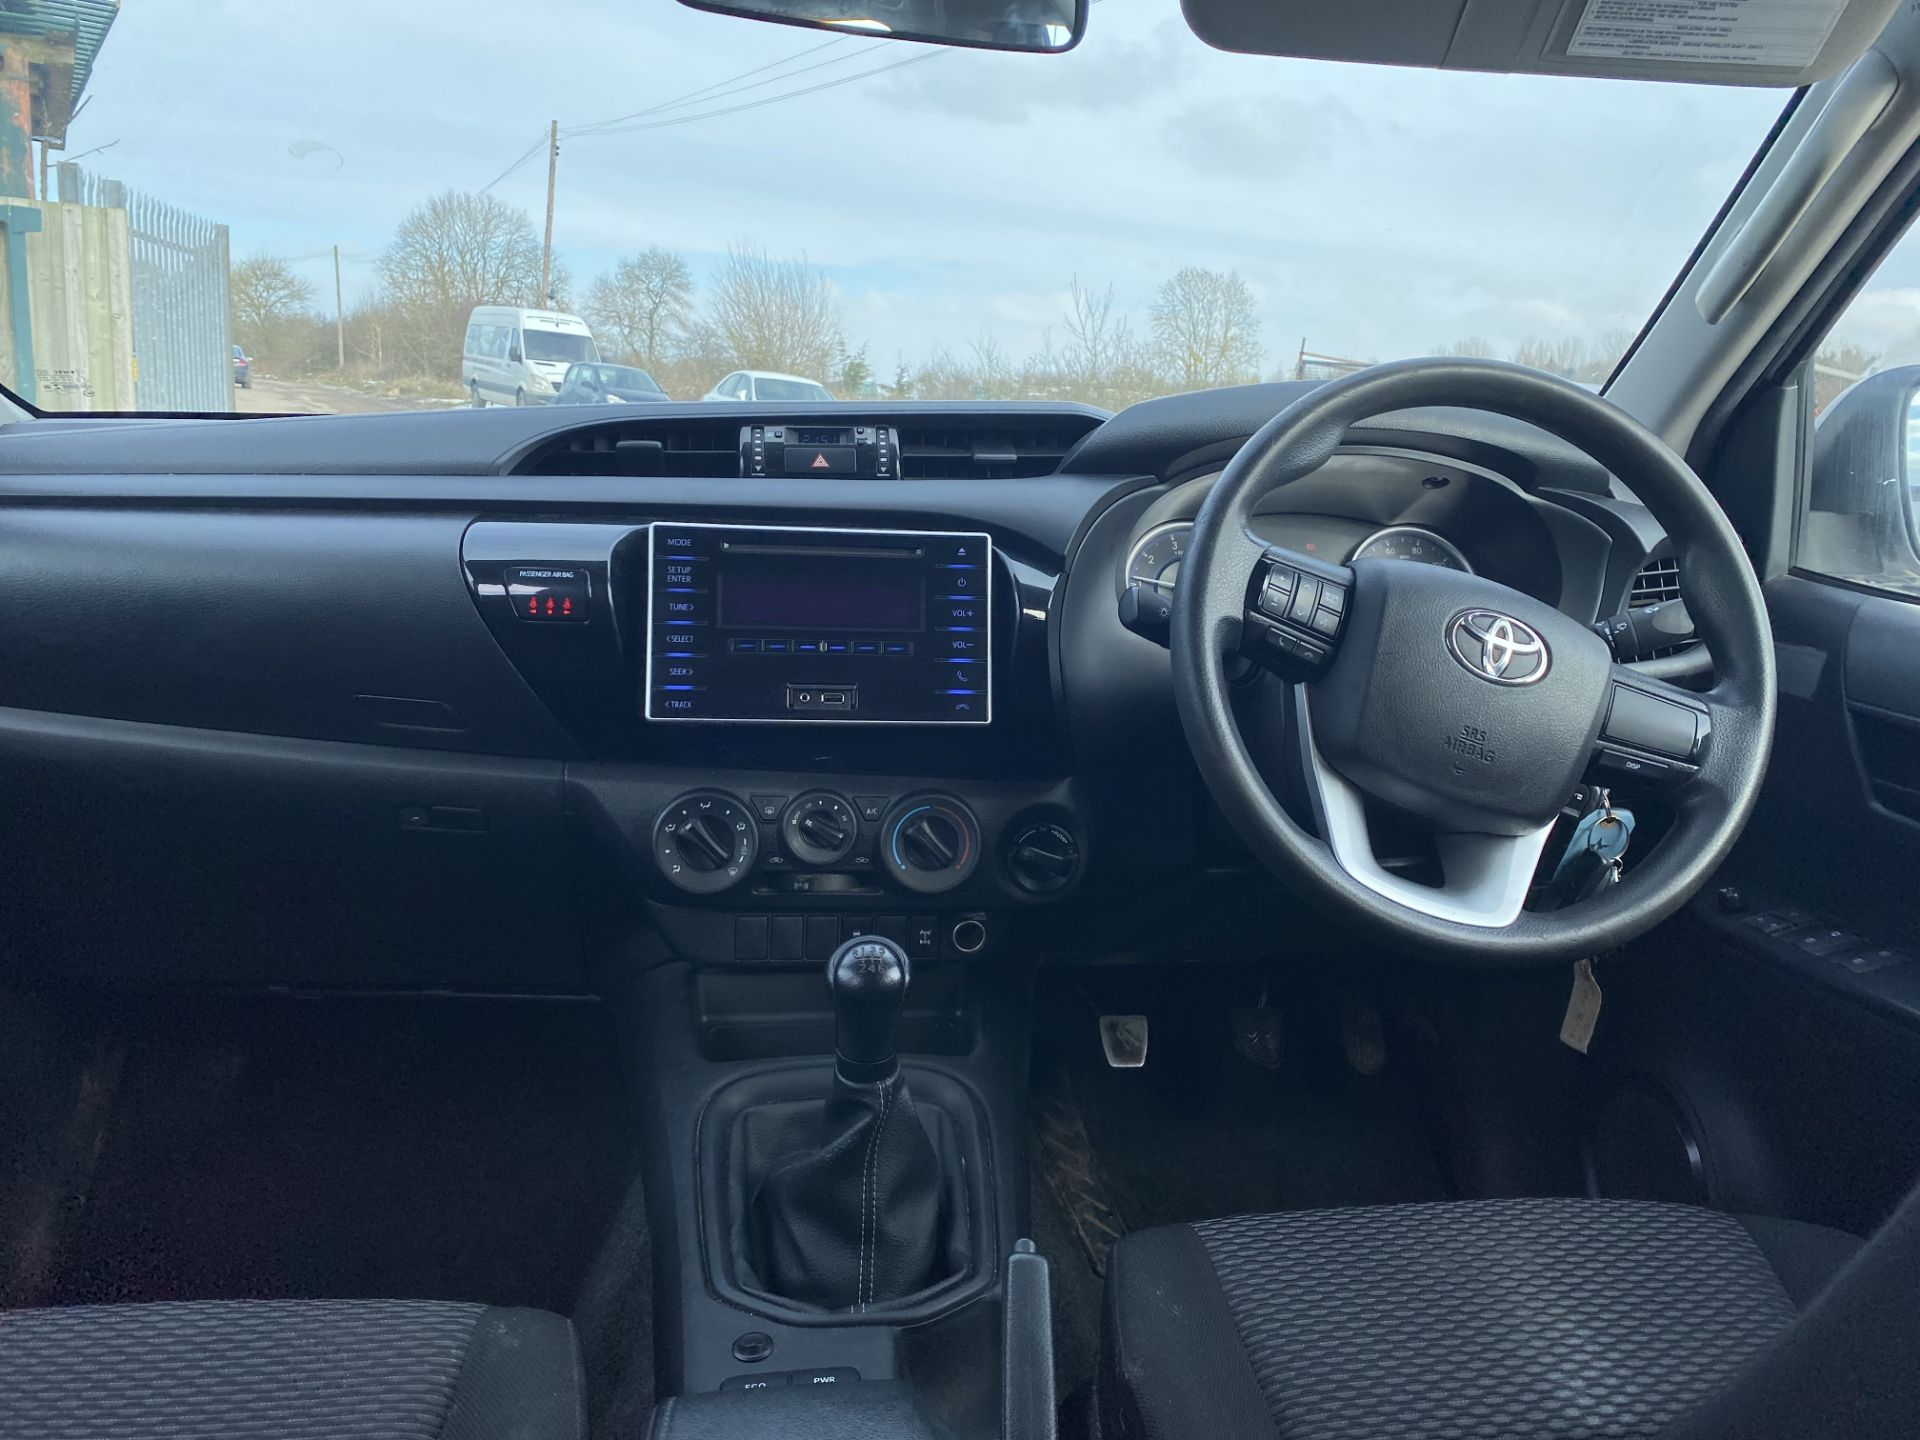 """TOYOTA HILUX """"ACTIVE"""" DOUBLE CAB PICK-UP (2016 - NEW MODEL) 1 OWNER - AIR CON - REAR CANOPY- LOOK - Image 18 of 19"""